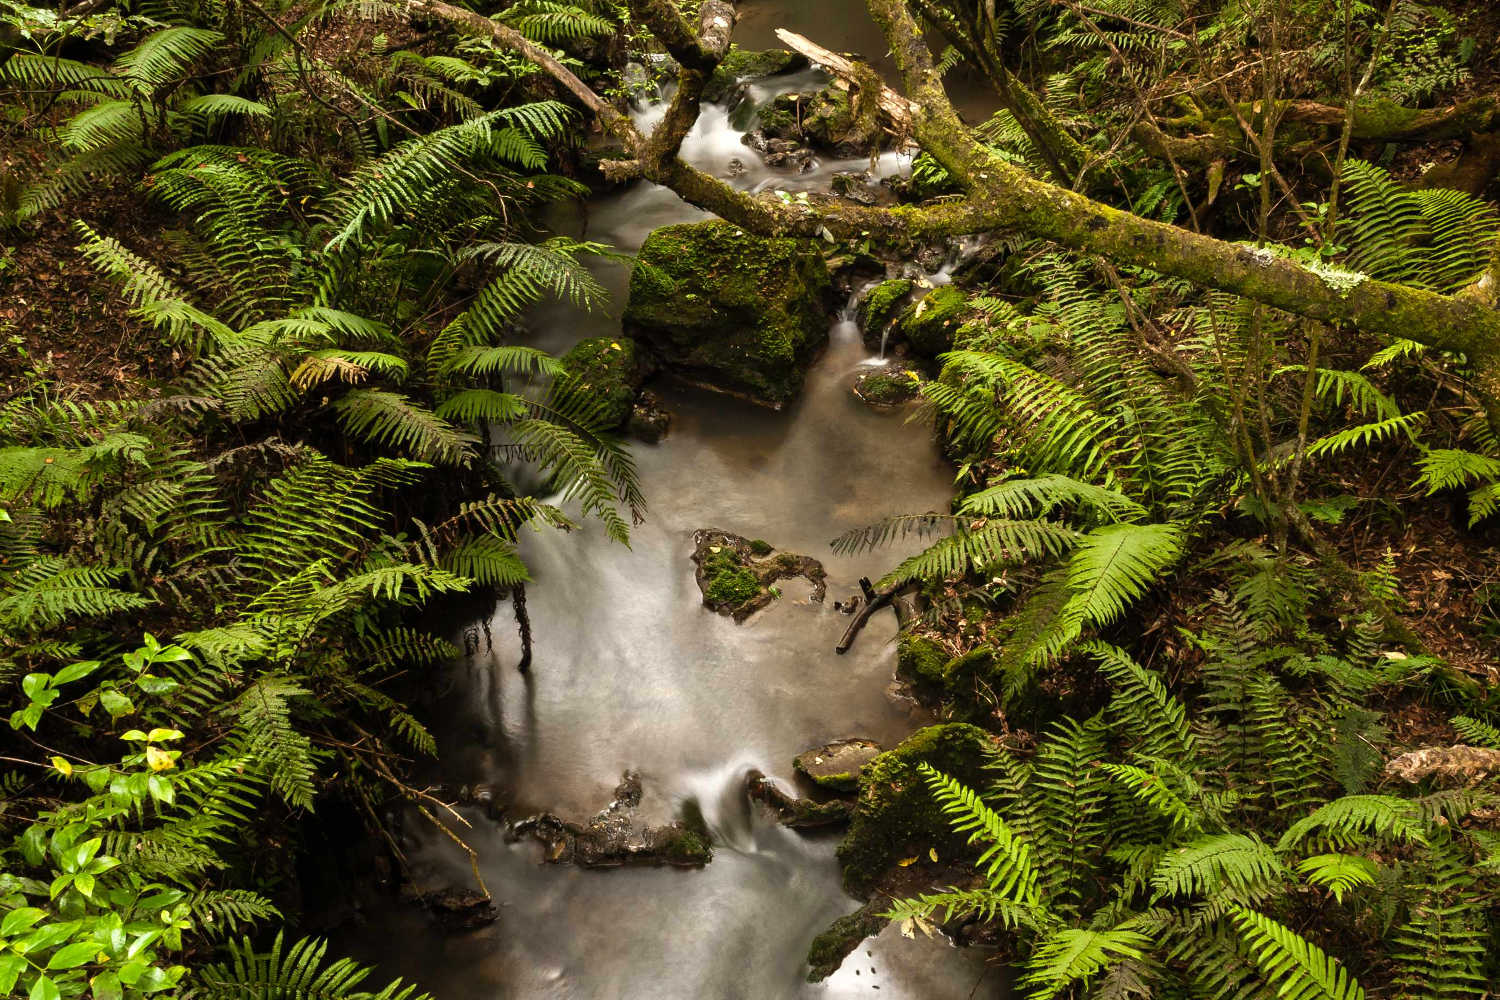 Kareaara stream in the White Pine Forest reserve